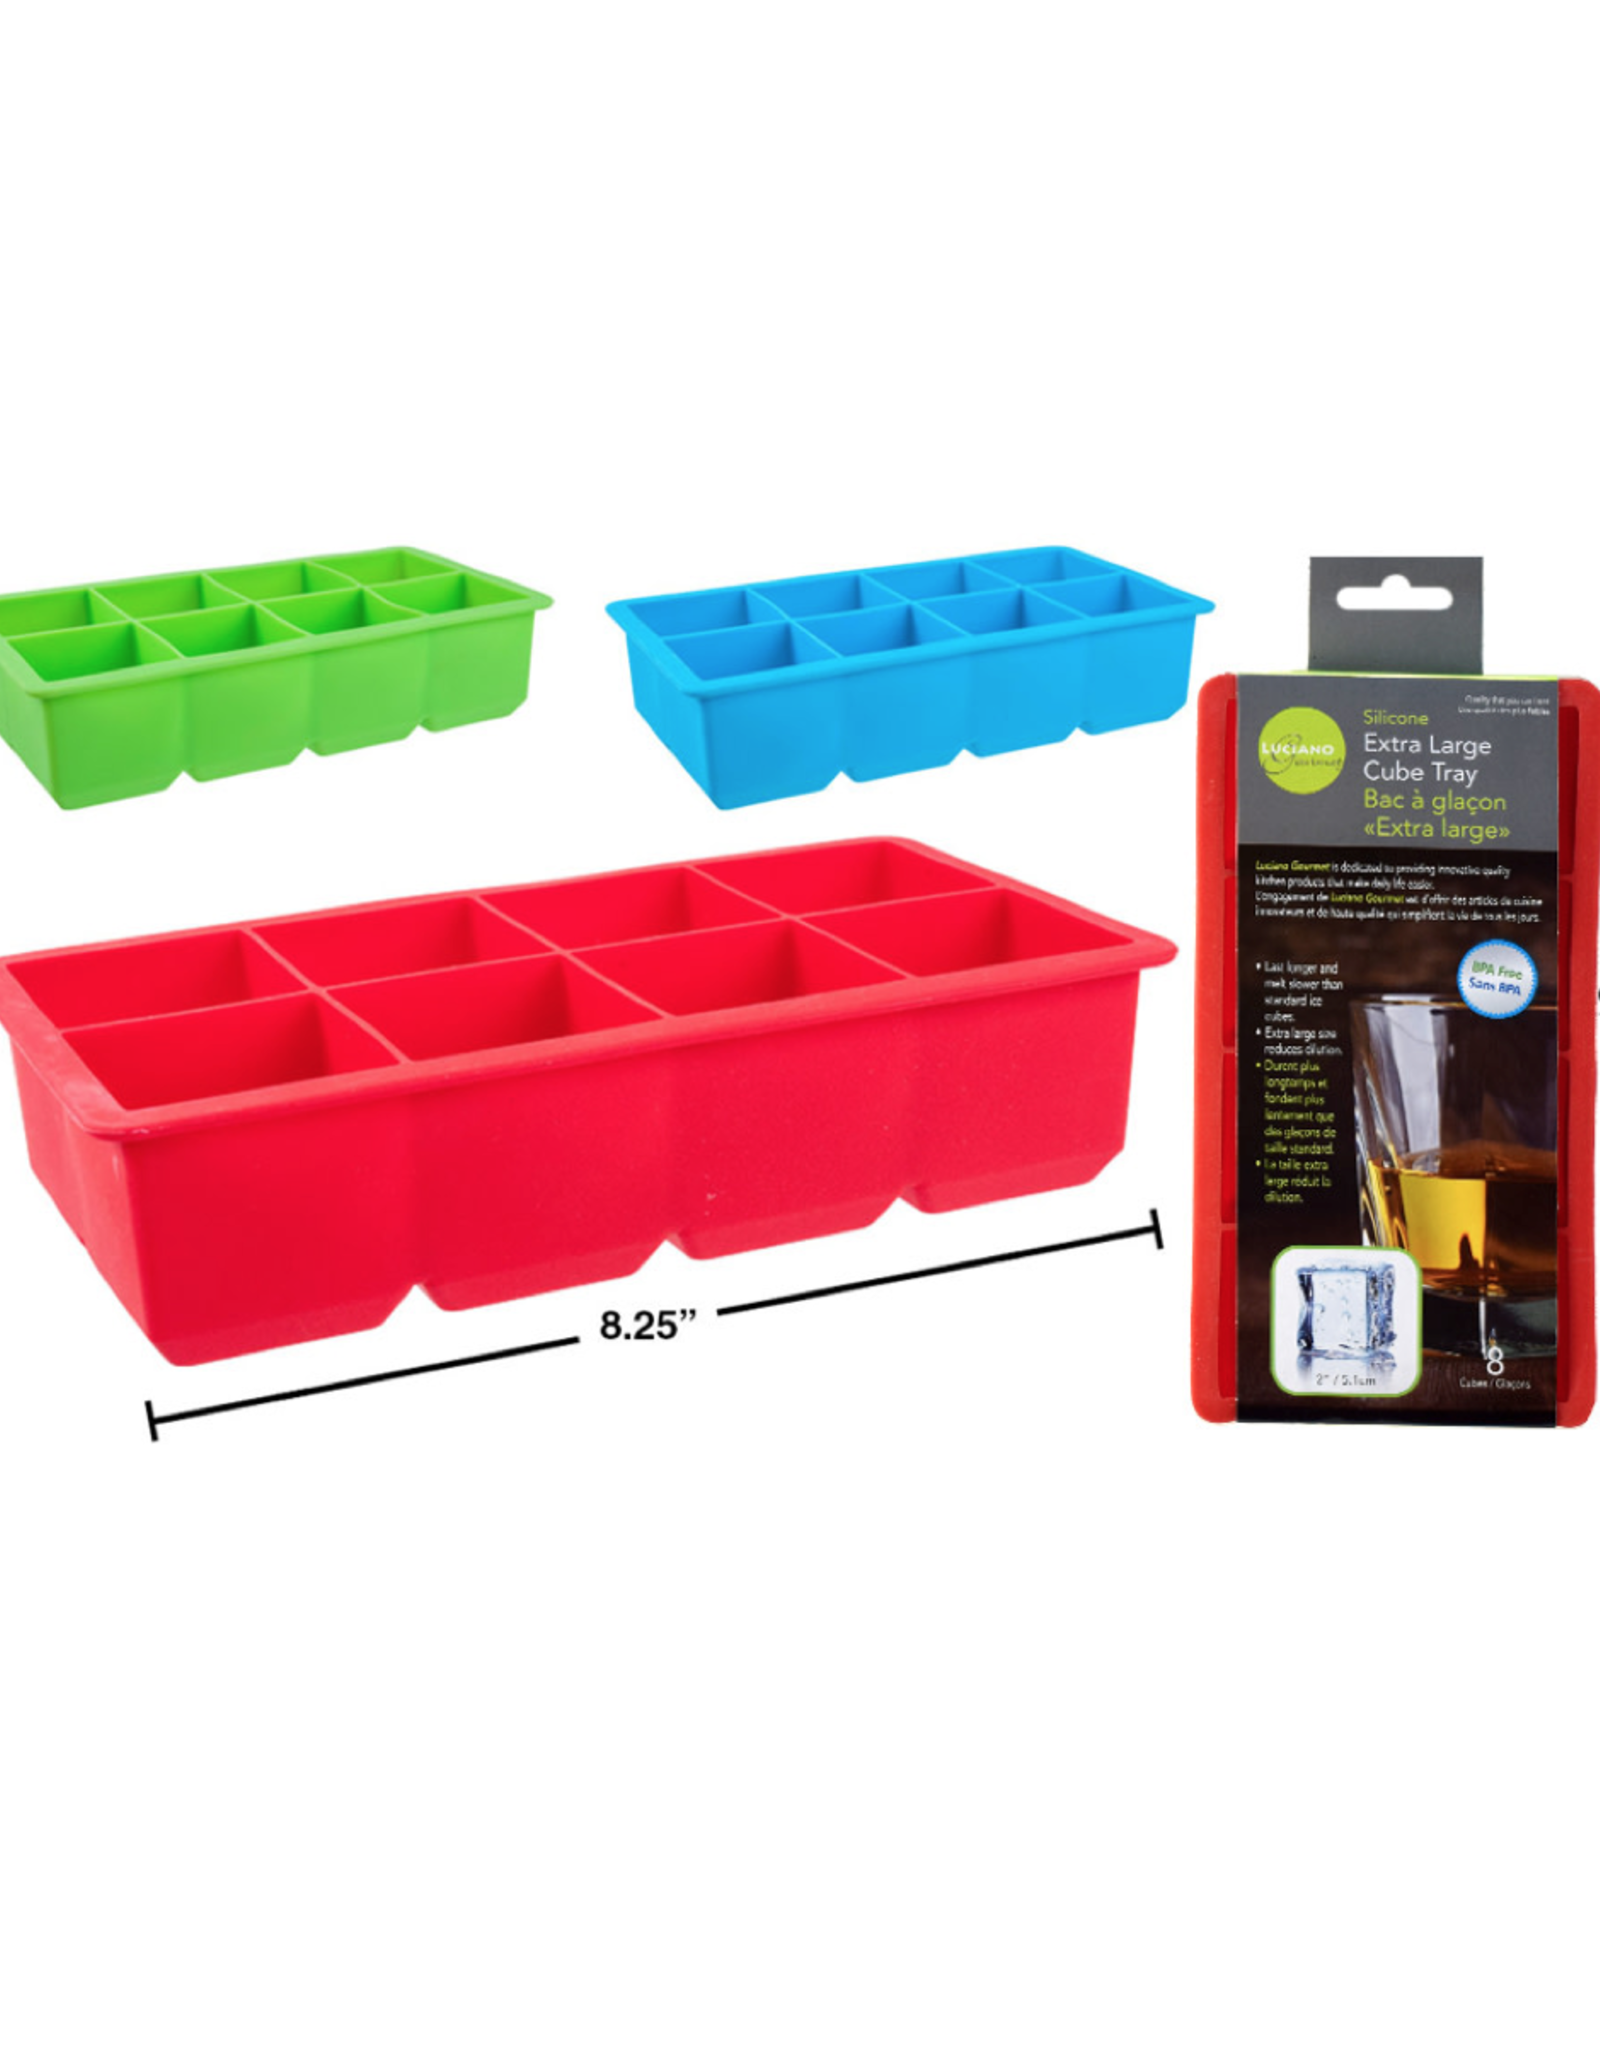 CTG - Ice Cube Tray/Silicone, 8 Large Cubes